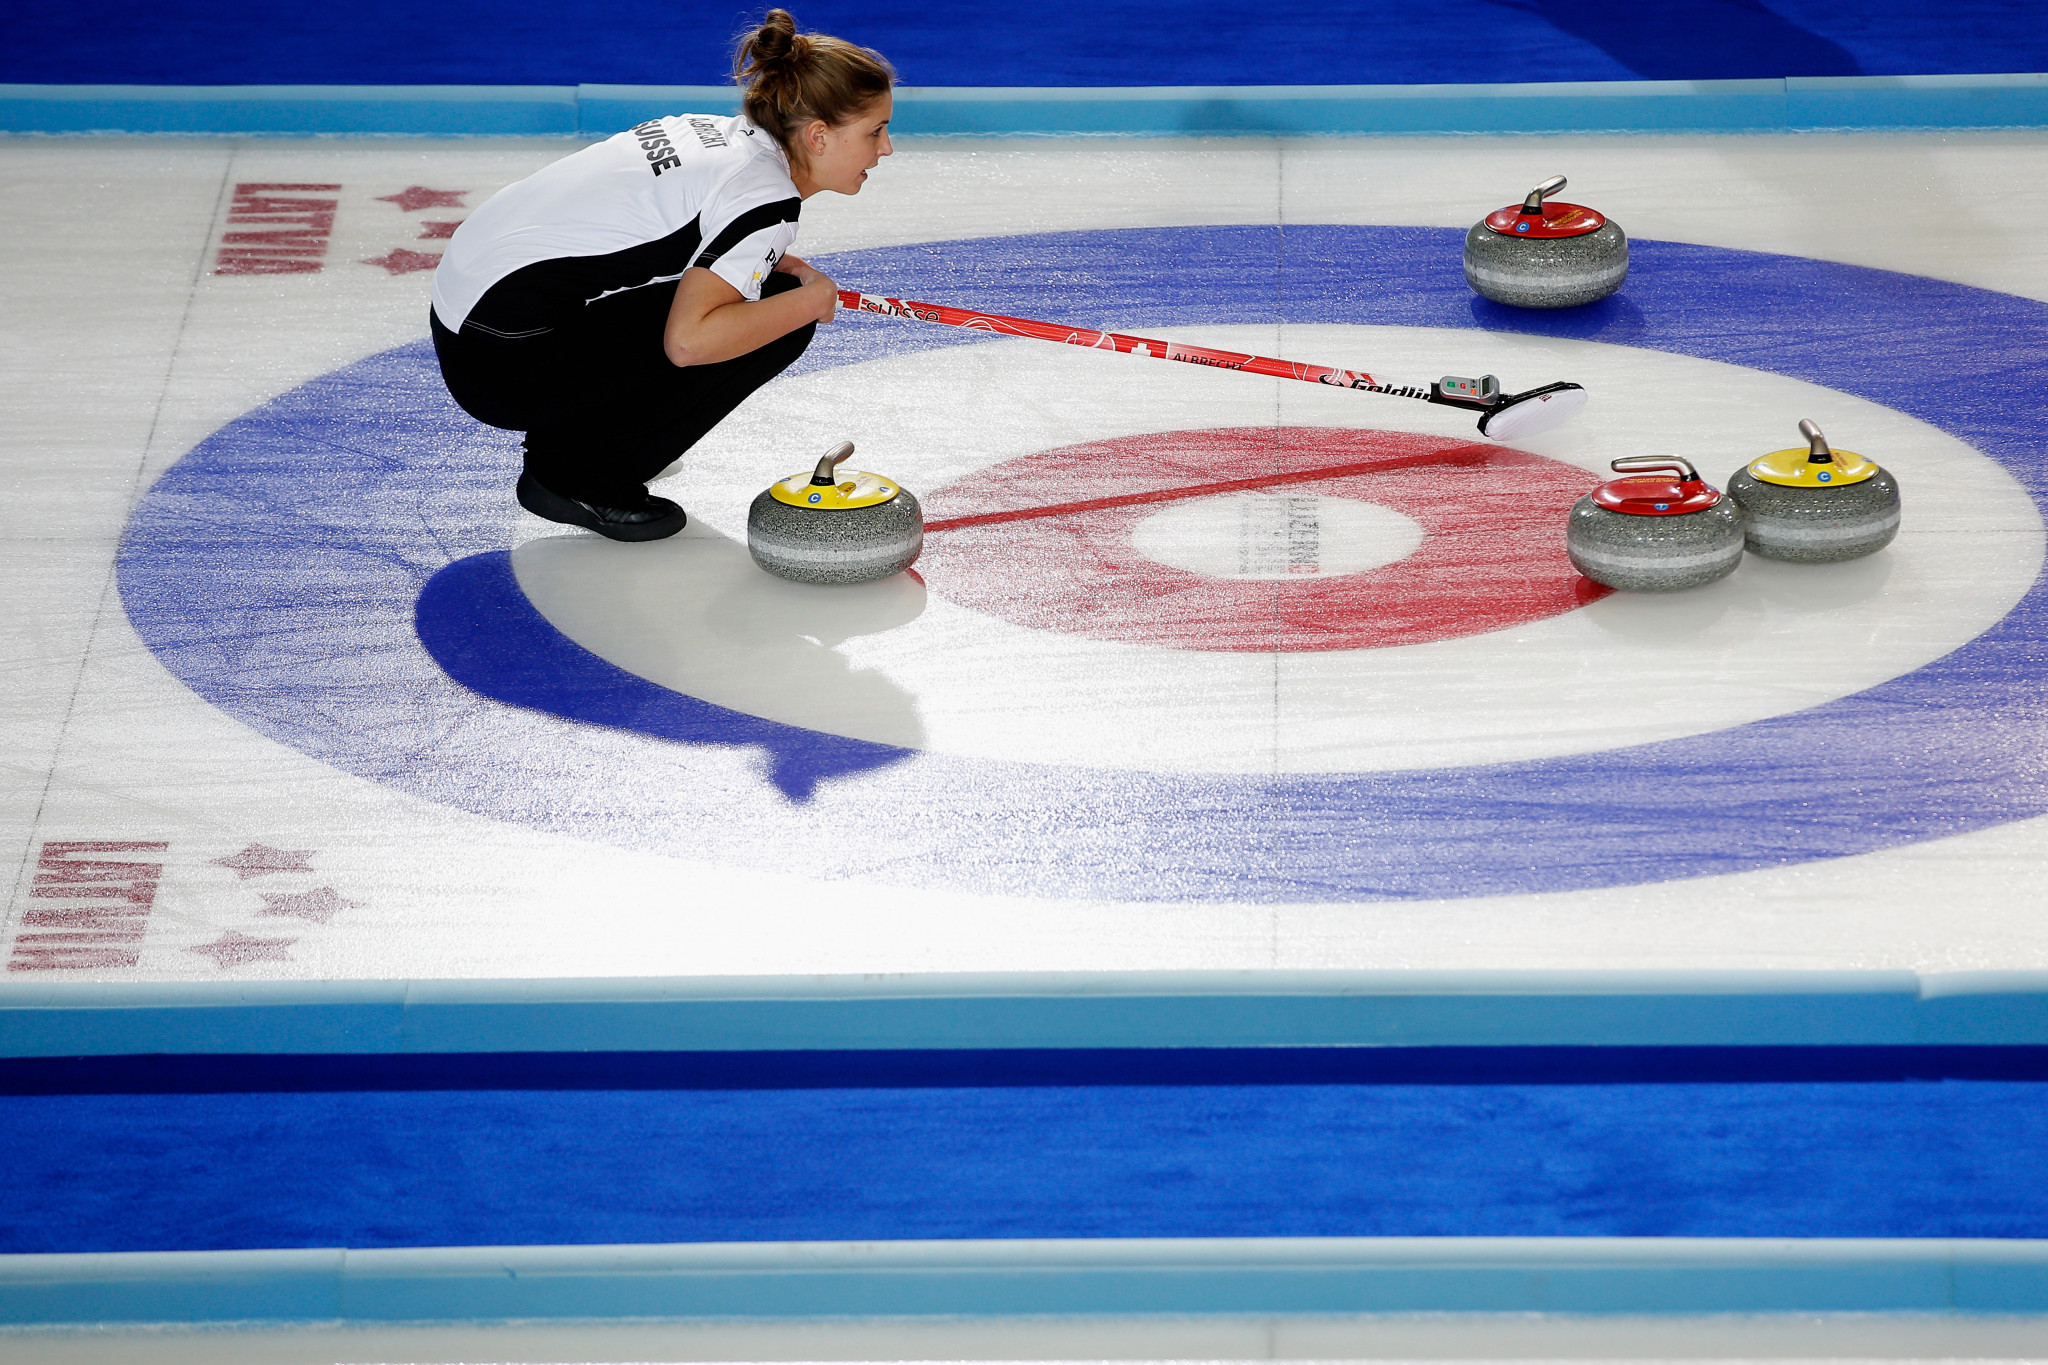 Swiss curler Albrecht named as athlete role model for Lausanne 2020